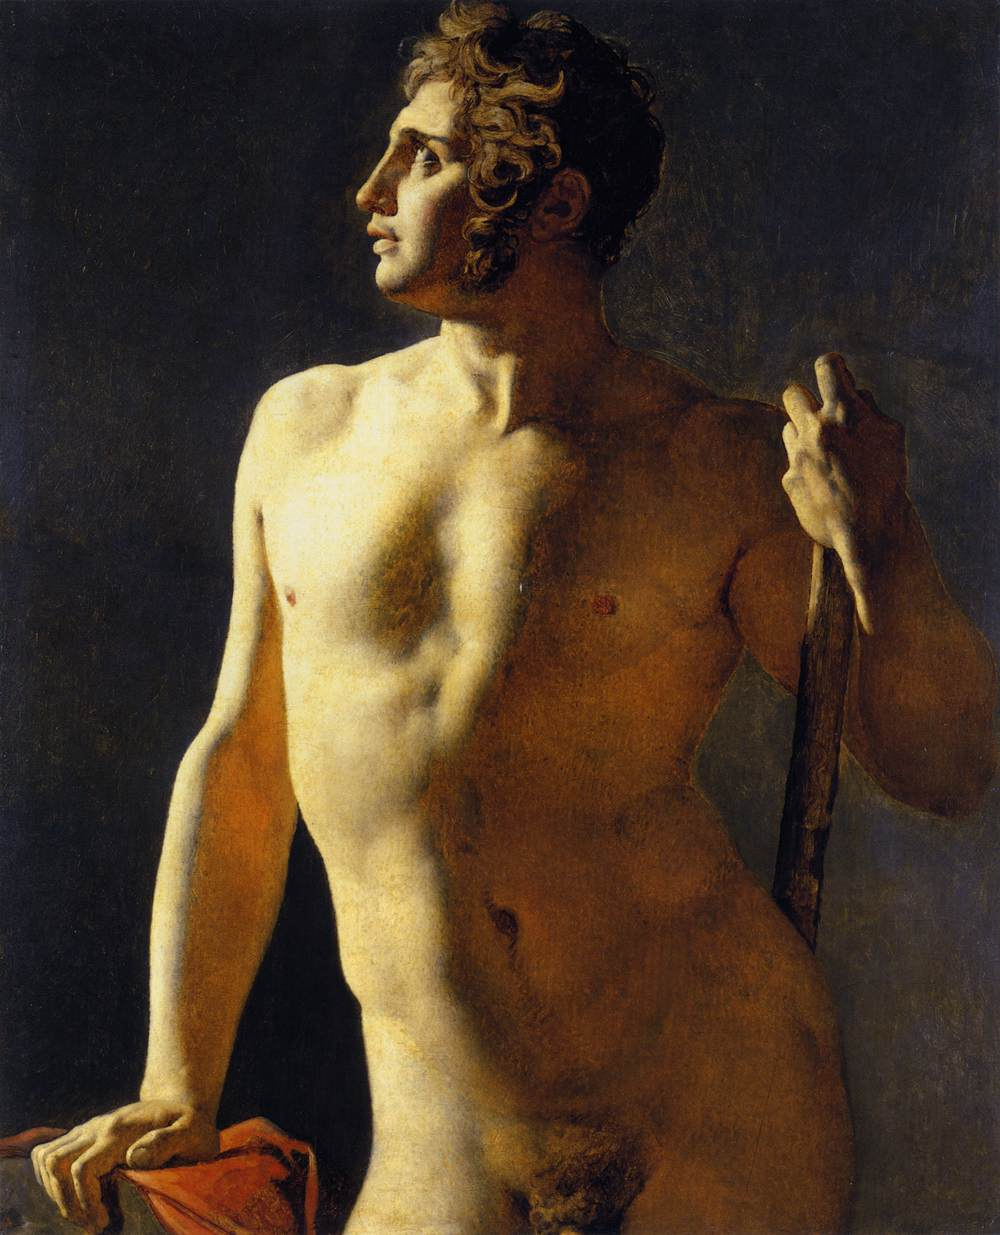 Enzensberger-Ingres